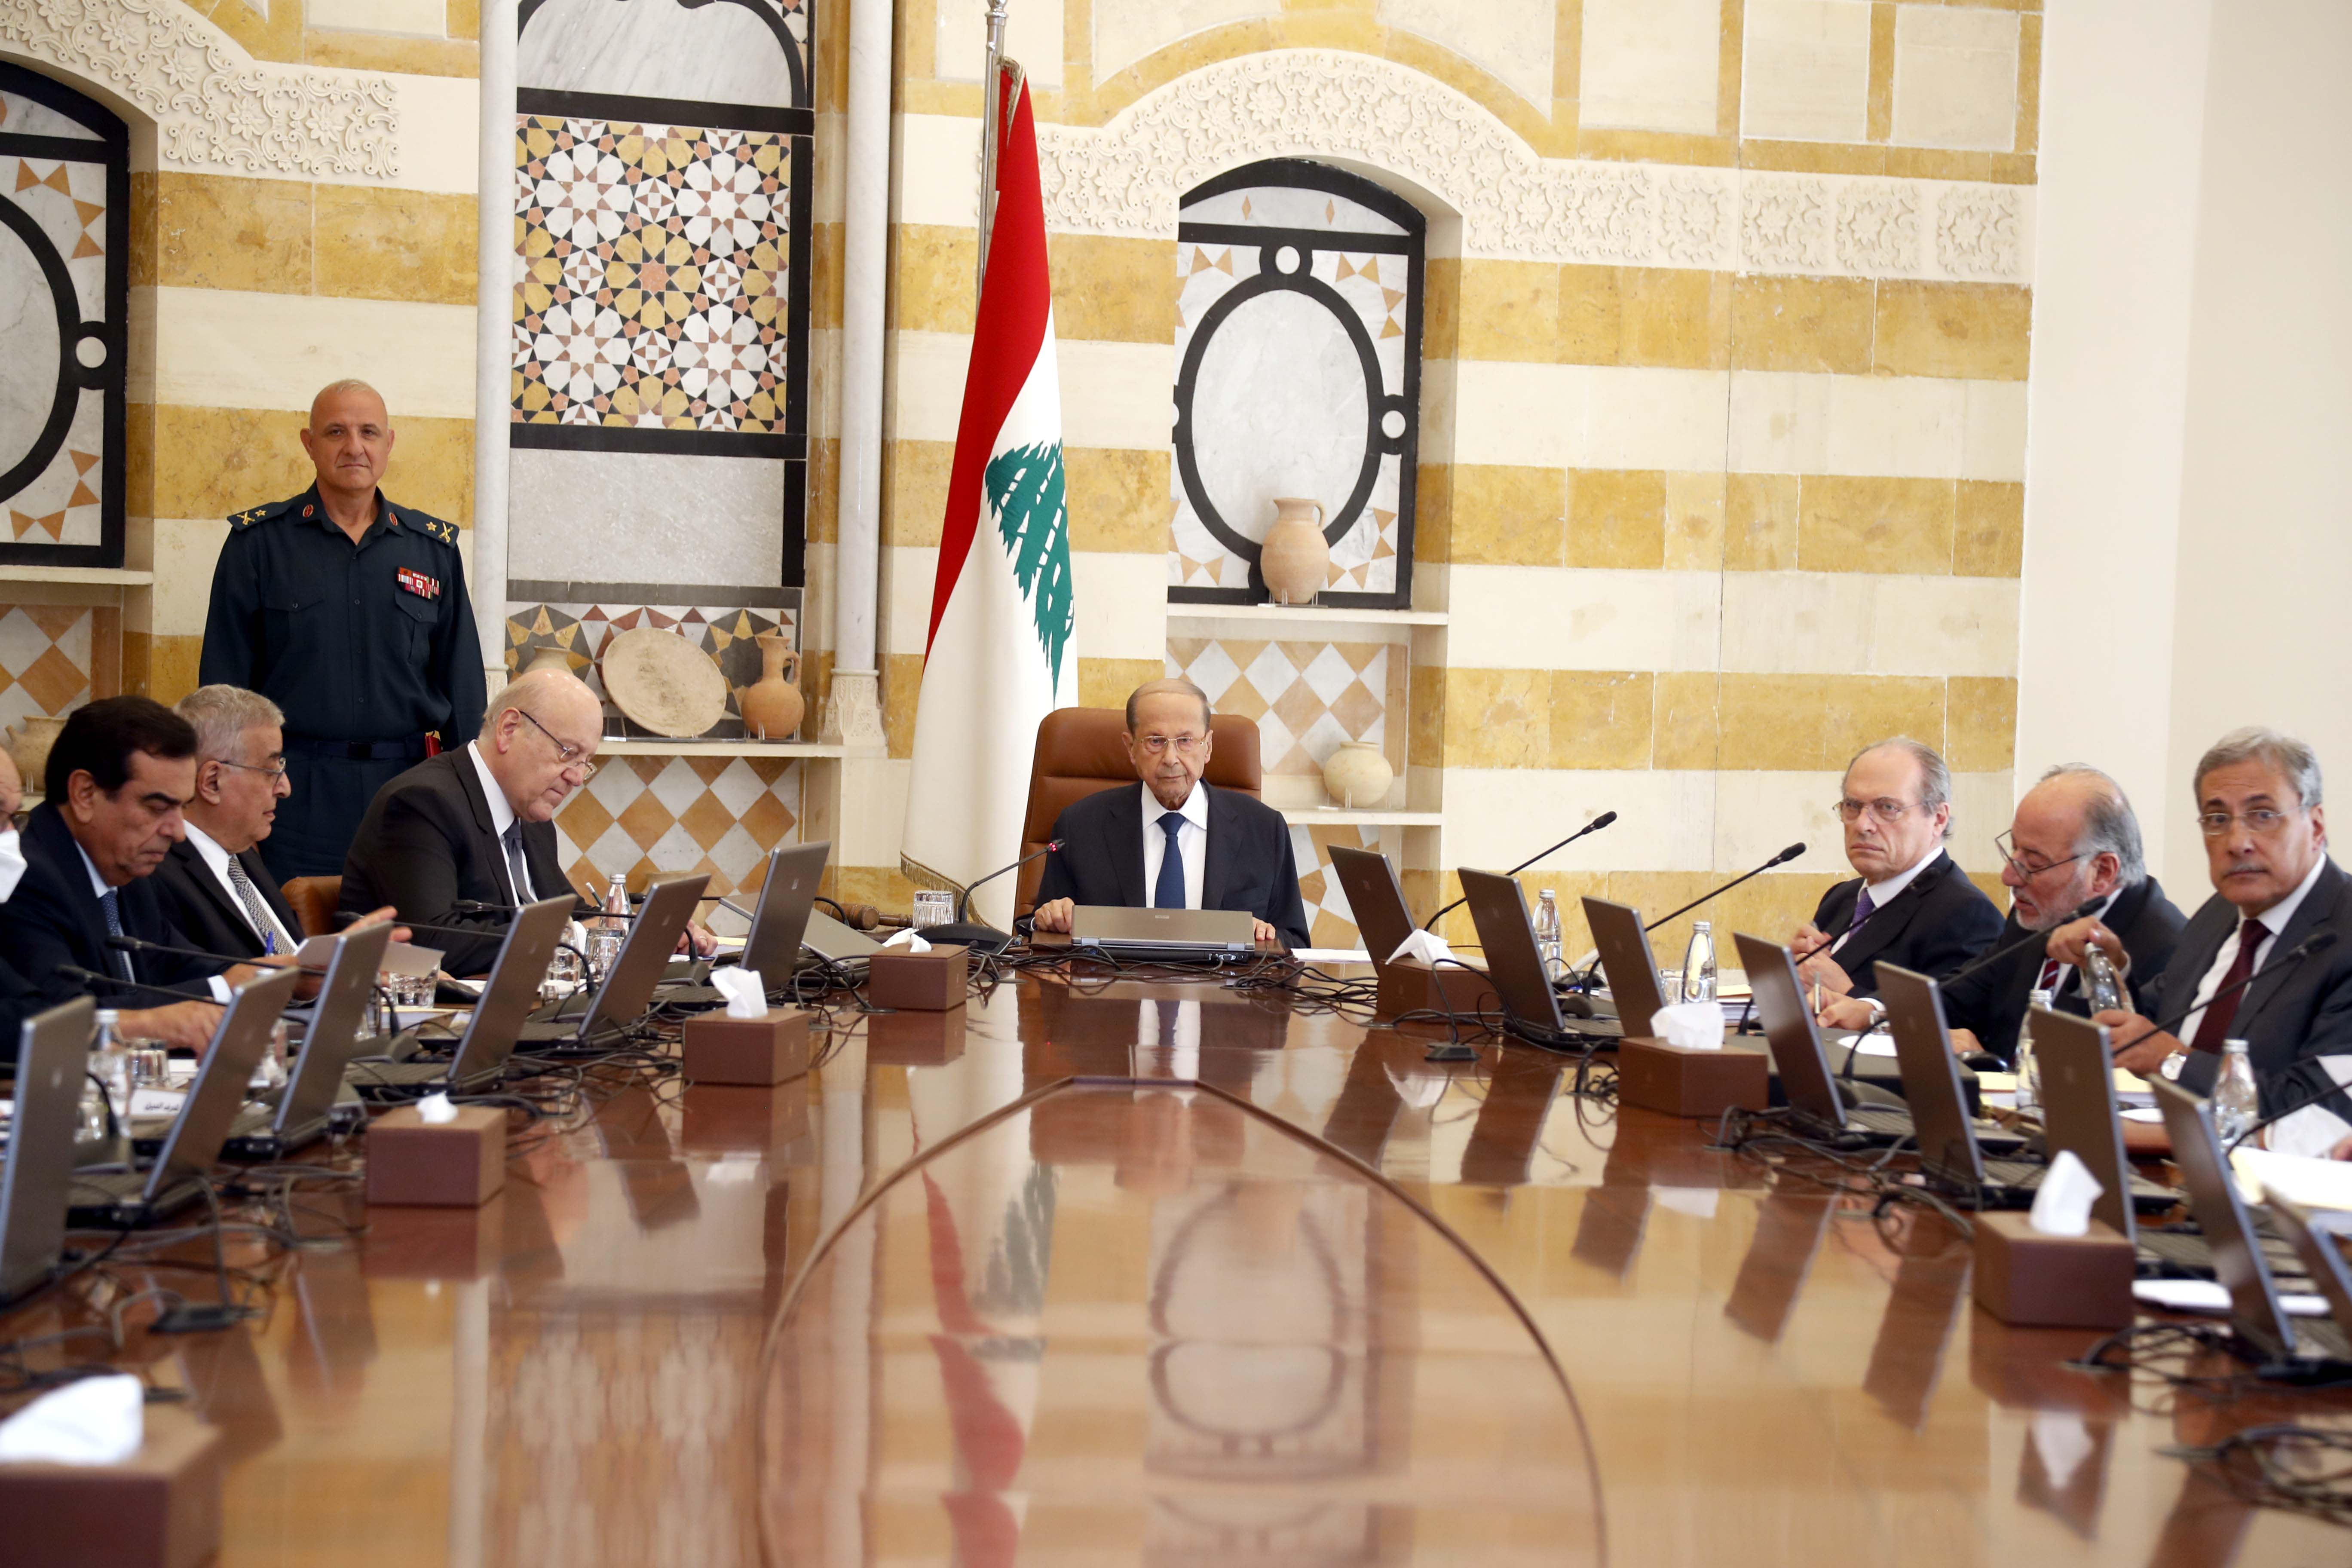 5 - Ministerial Council (1)